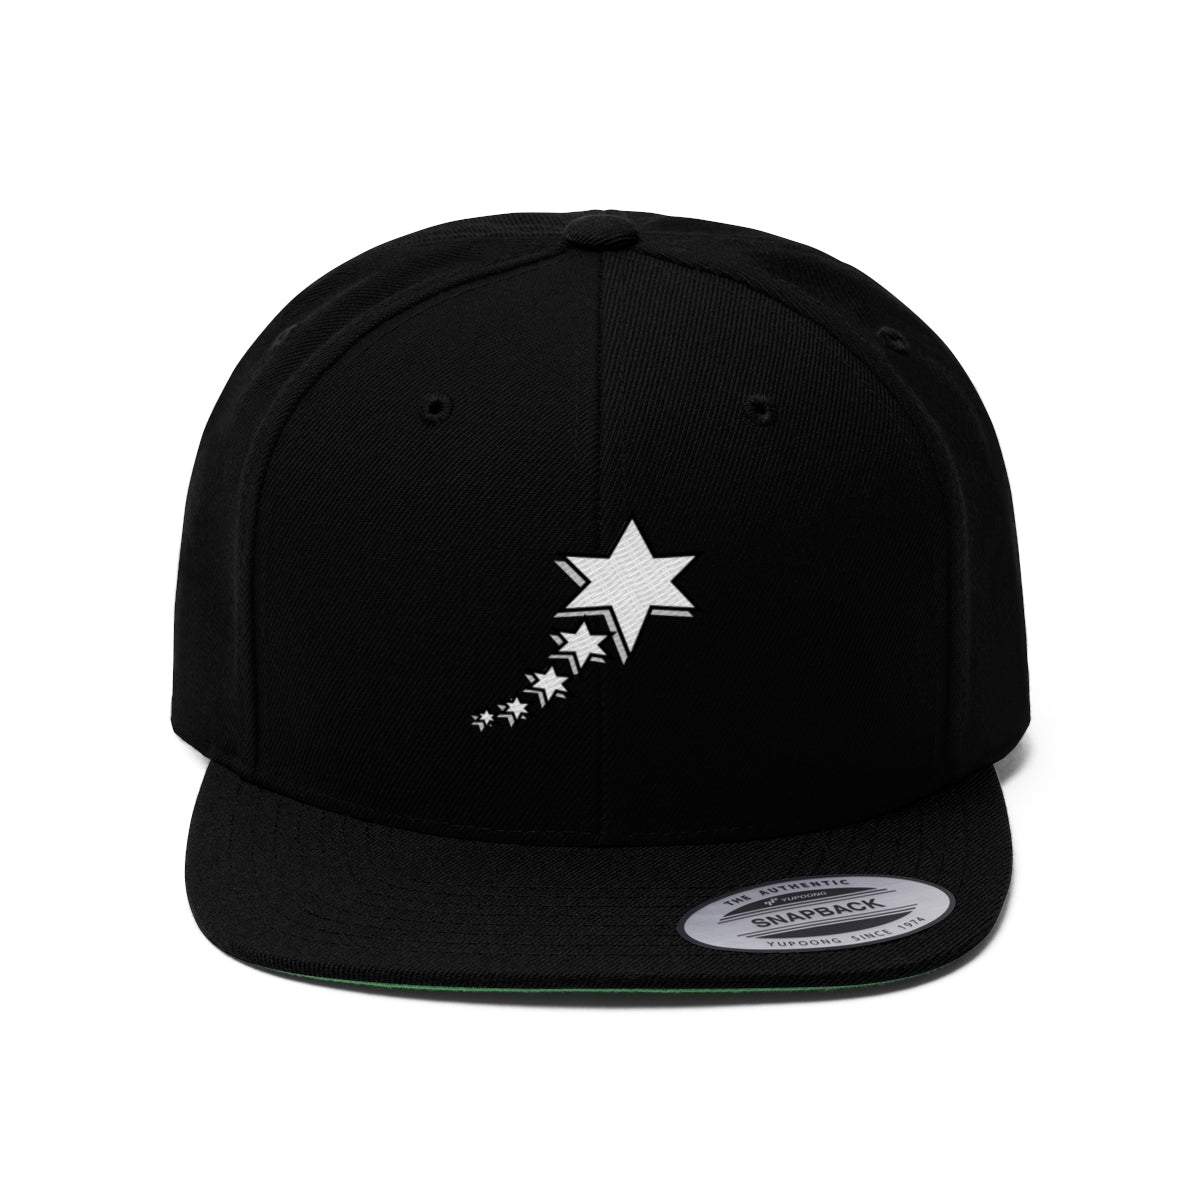 Unisex Flat Bill Hat - White 6 point 5 stars (White)